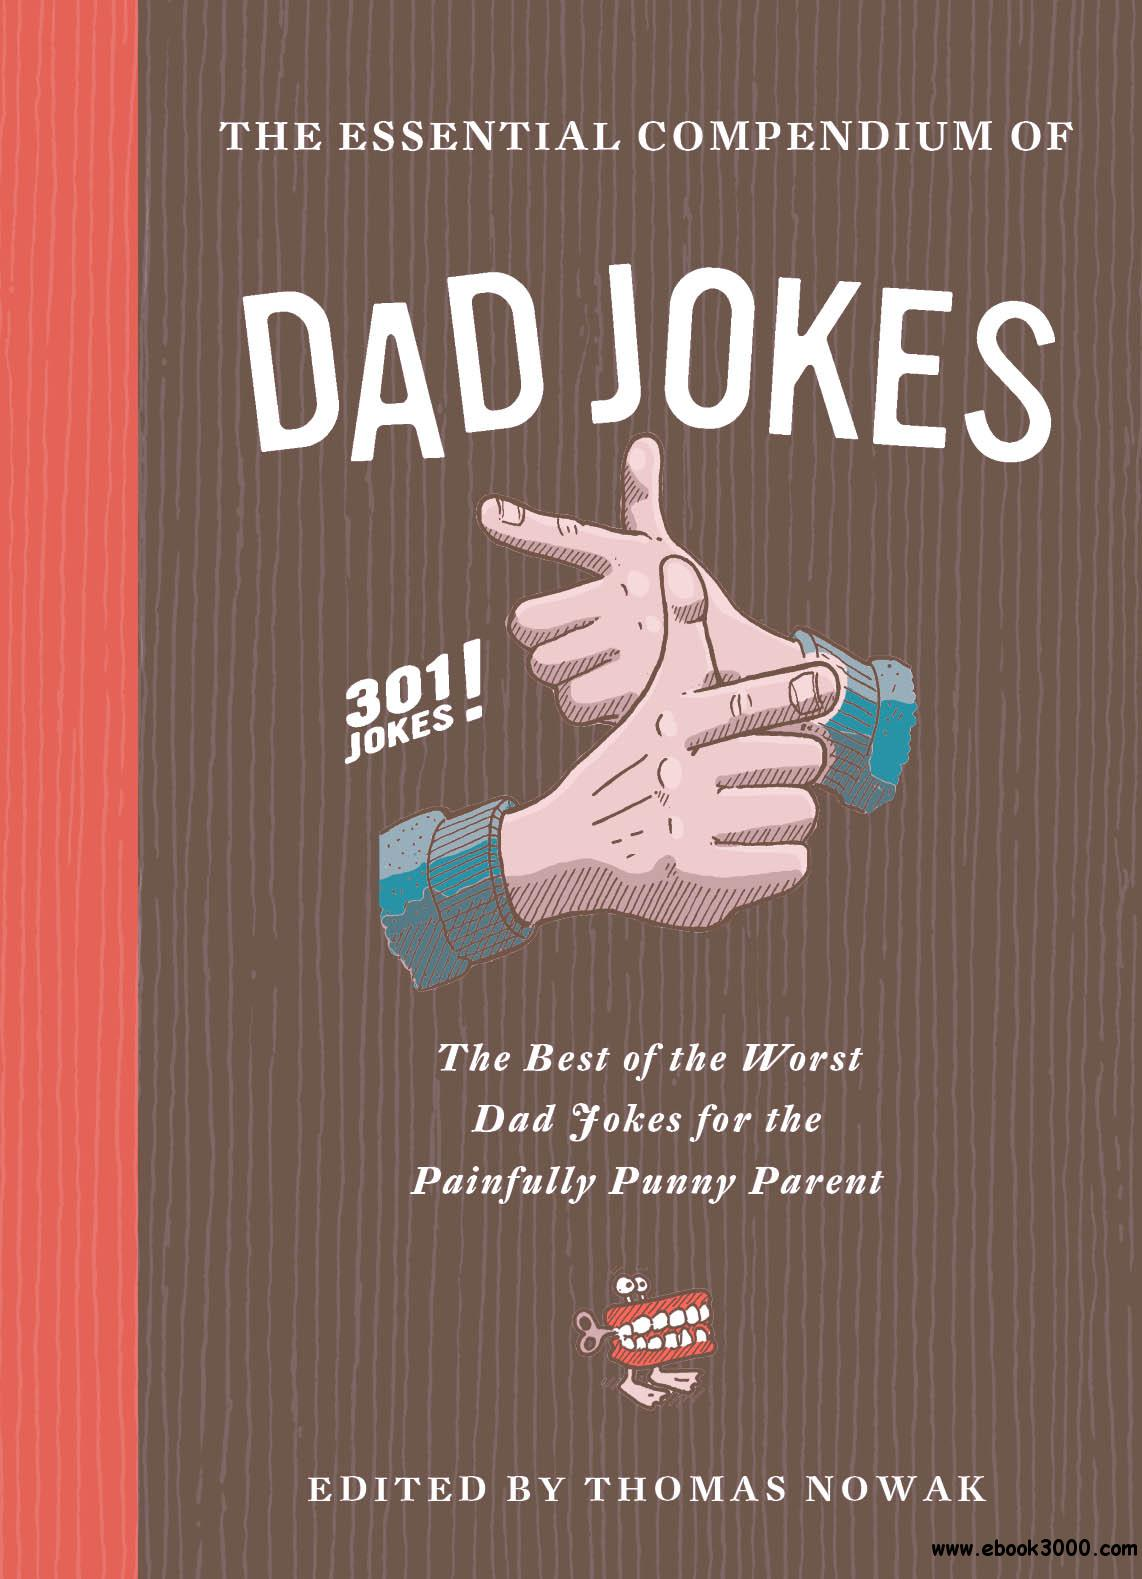 The Essential Compendium of Dad Jokes: The Best of the Worst Dad Jokes for the Painfully Punny Parent: 301 Jokes!